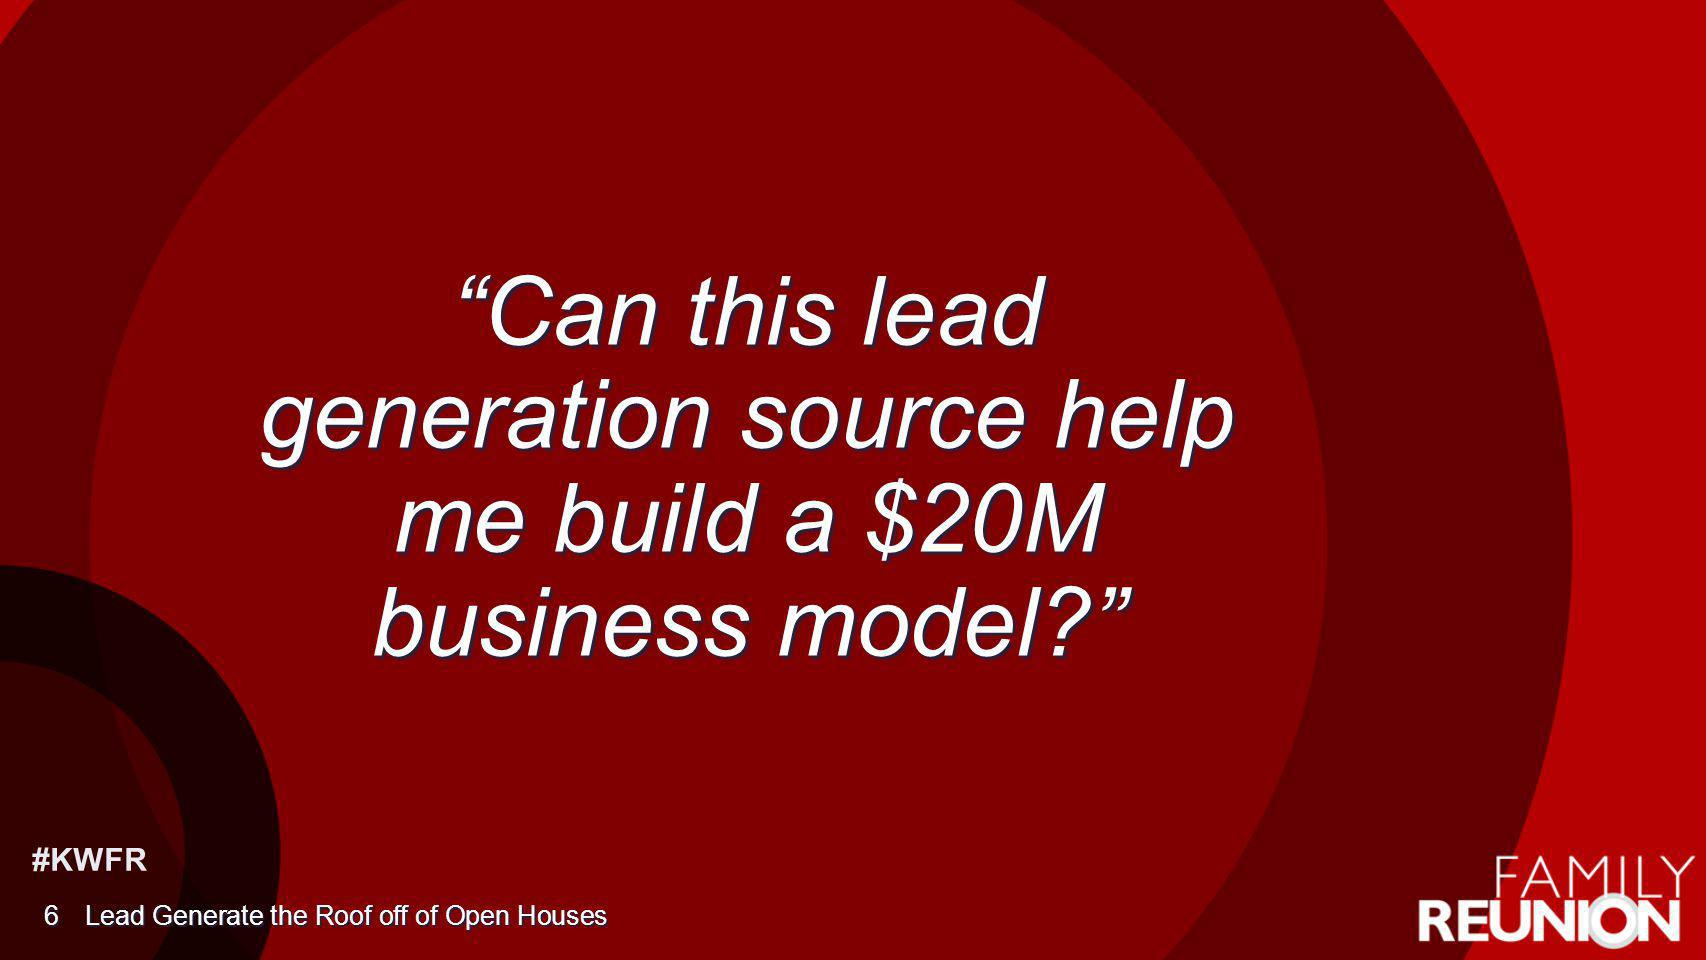 #KWFR Can this lead generation source help me build a $20M business model? Lead Generate the Roof off of Open Houses 6